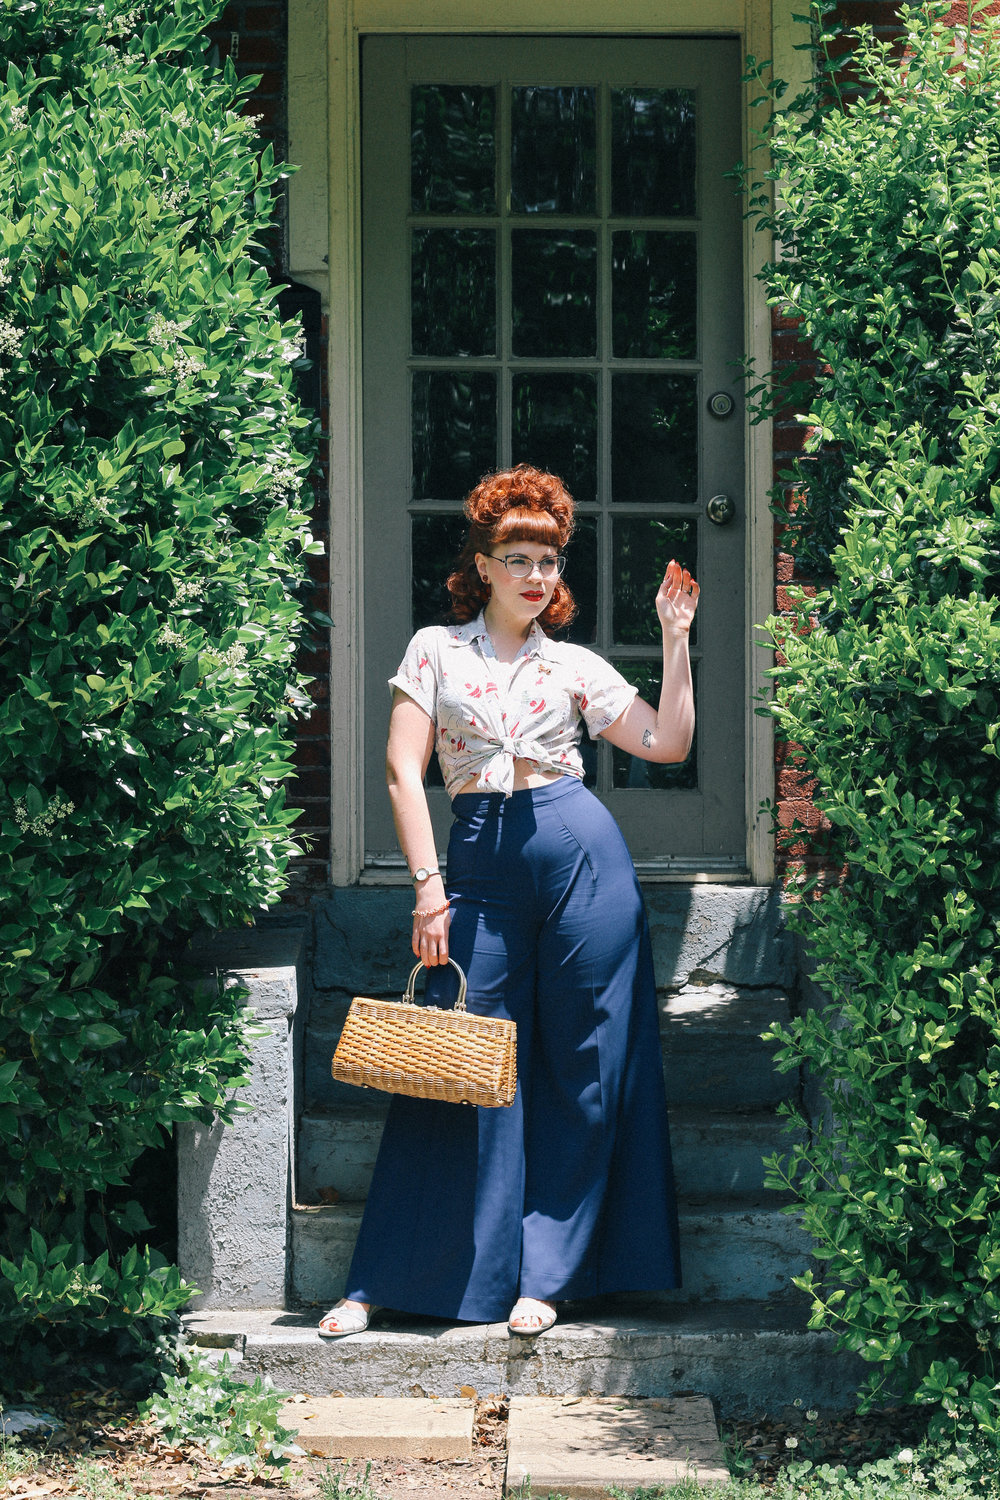 20180503_BAPPhotography_AtlantaPhotographer_VintageFashion_3.jpg